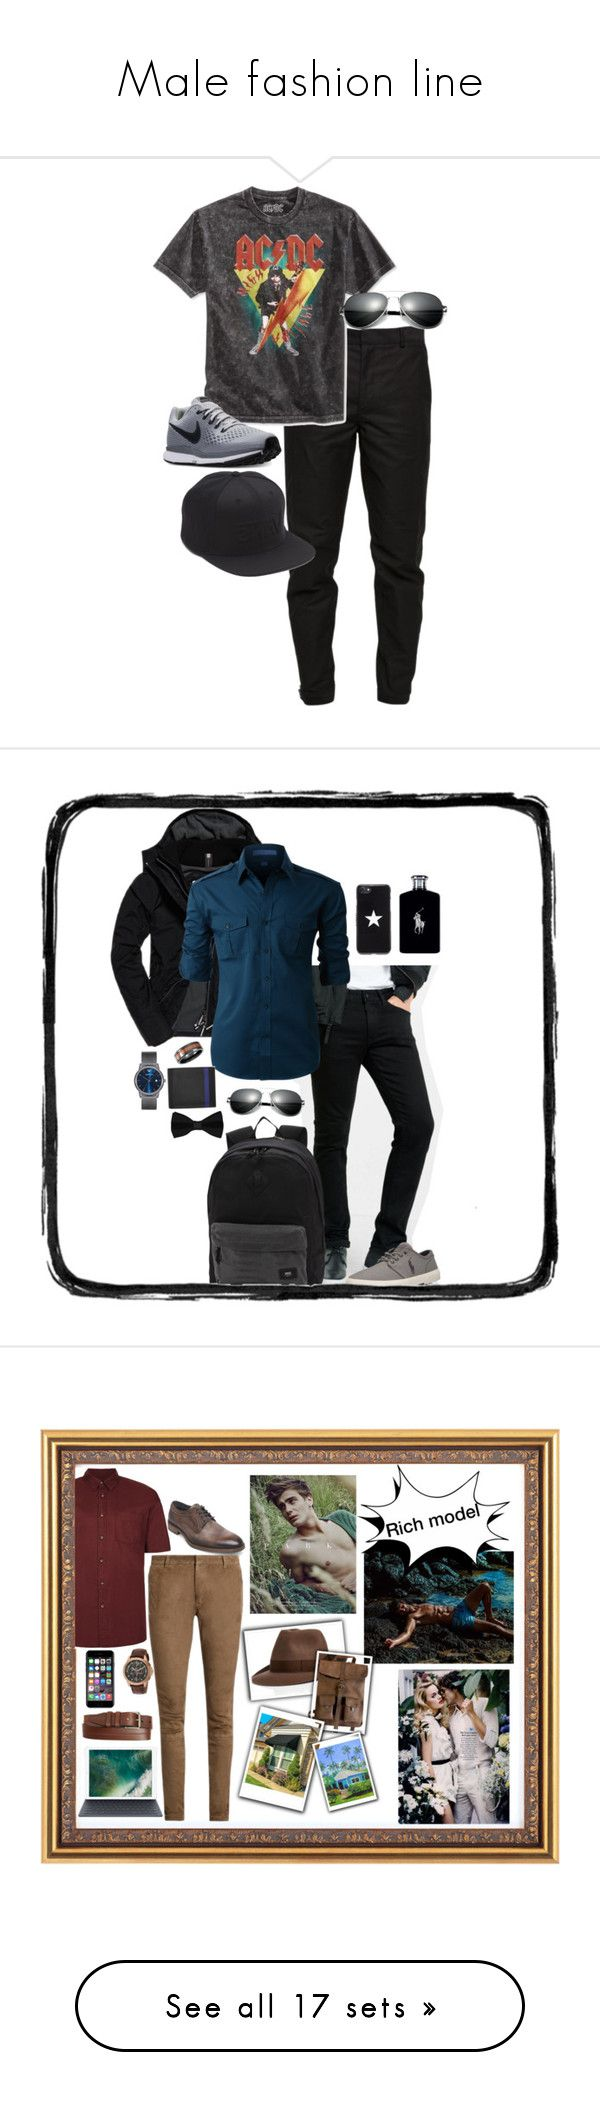 """""""Male fashion line"""" by jennisonklichfield ❤ liked on Polyvore featuring Maison Margiela, Bioworld, NIKE, Vans, men's fashion, menswear, Superdry, Express, LE3NO and Emporio Armani"""